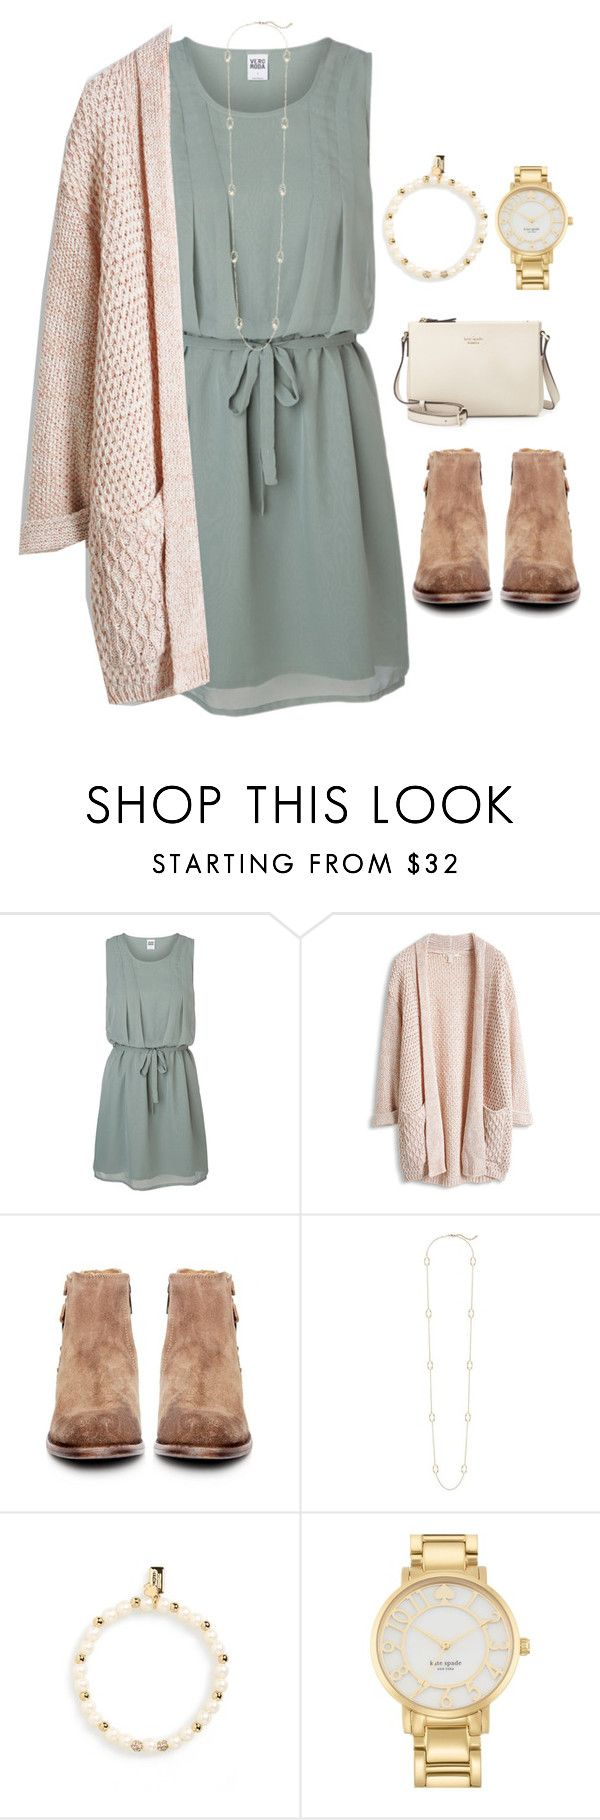 """""""My heart is at peace, for Greater is He"""" by madelynprice ❤ liked on Polyvore featuring Vero Moda, H by Hudson, Kendra Scott and Kate Spade"""